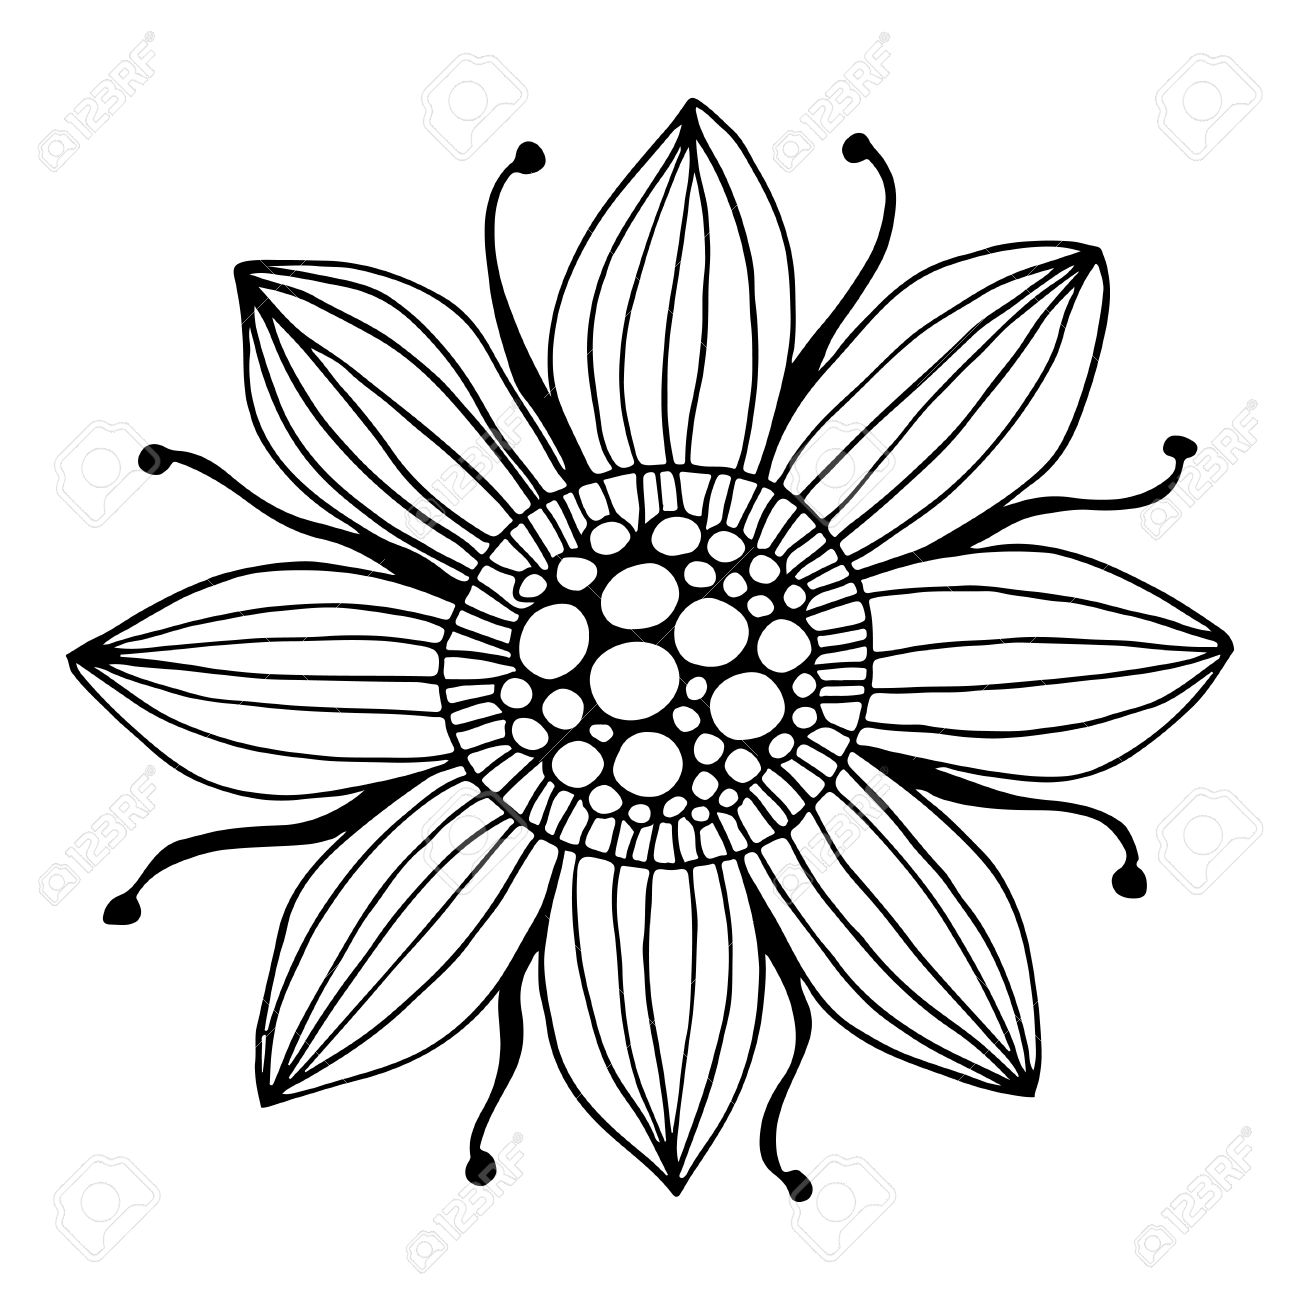 1300x1300 42139232 Zentangle Flower The Image Is Hand Drawn Black Outline